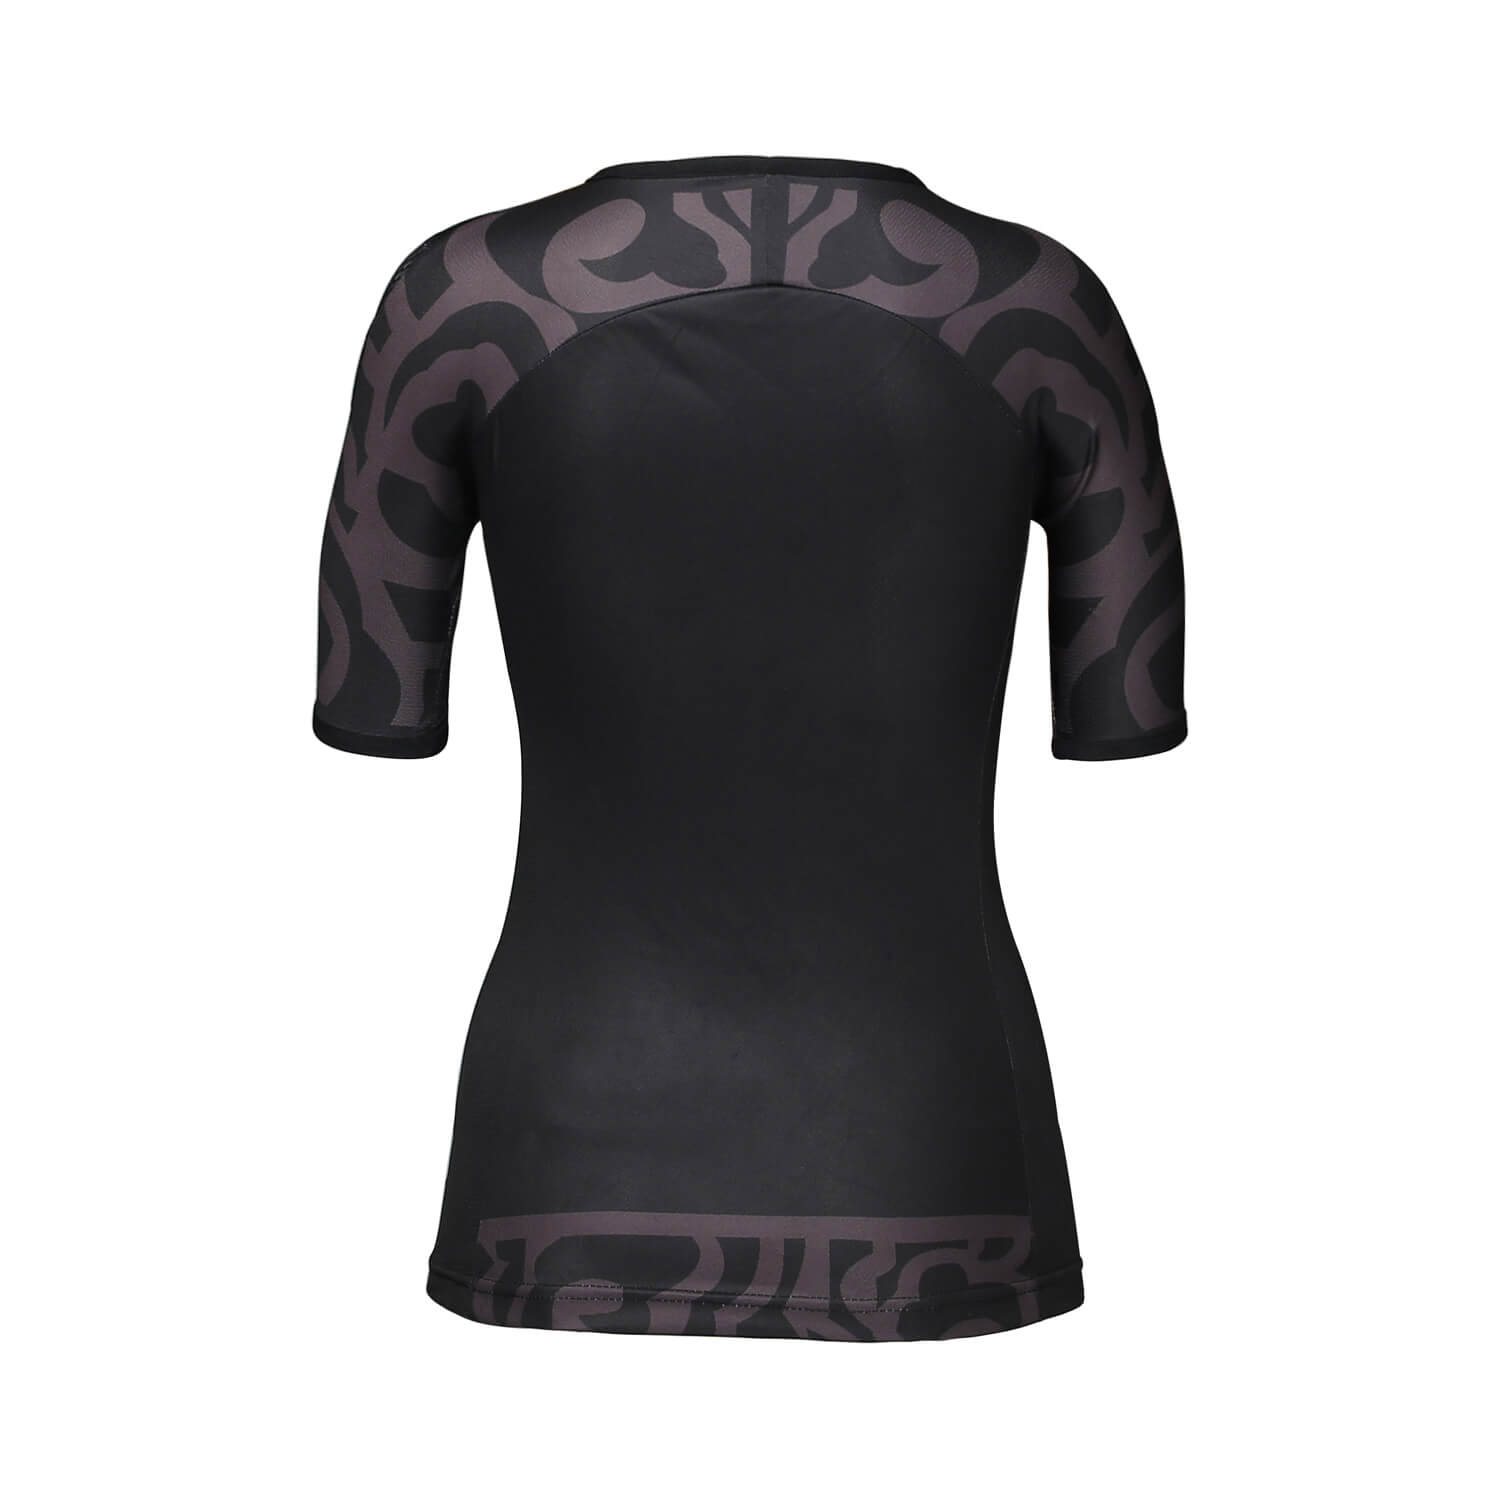 The Trail Black bike T-shirt Womens Cycling Jersey Sale